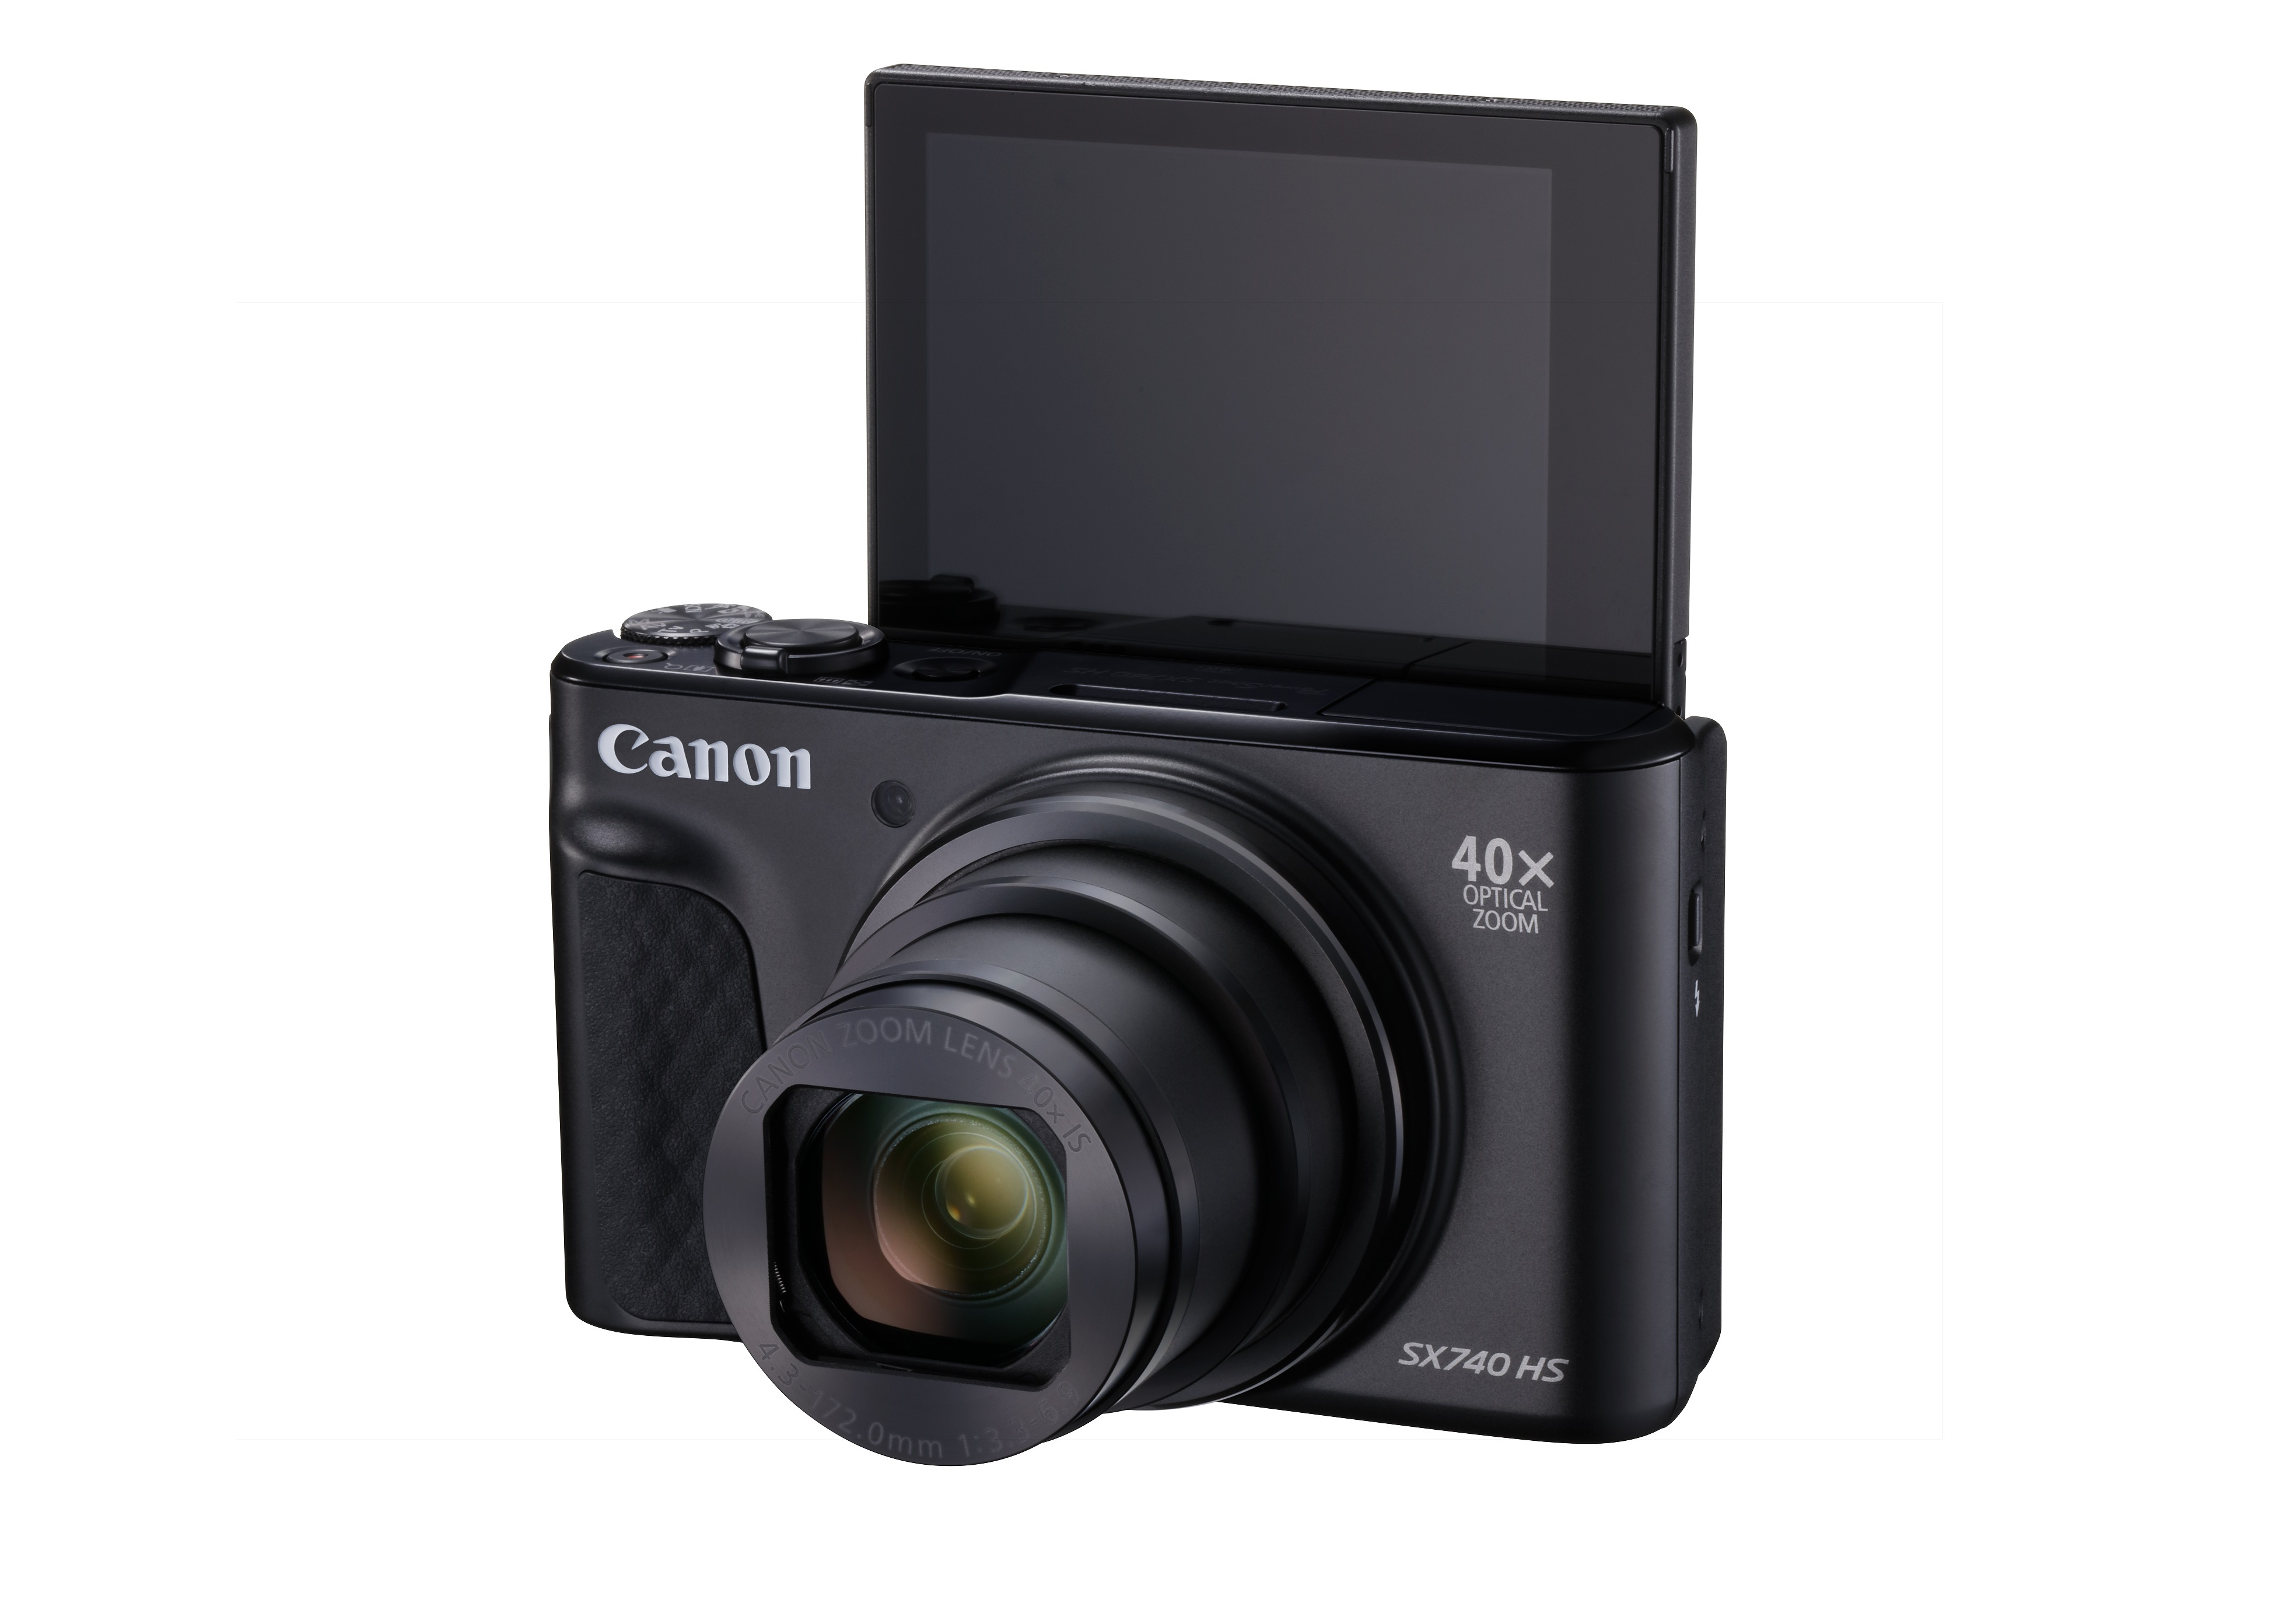 Canon Launches New PowerShot SX740 HS Digital Compact Camera